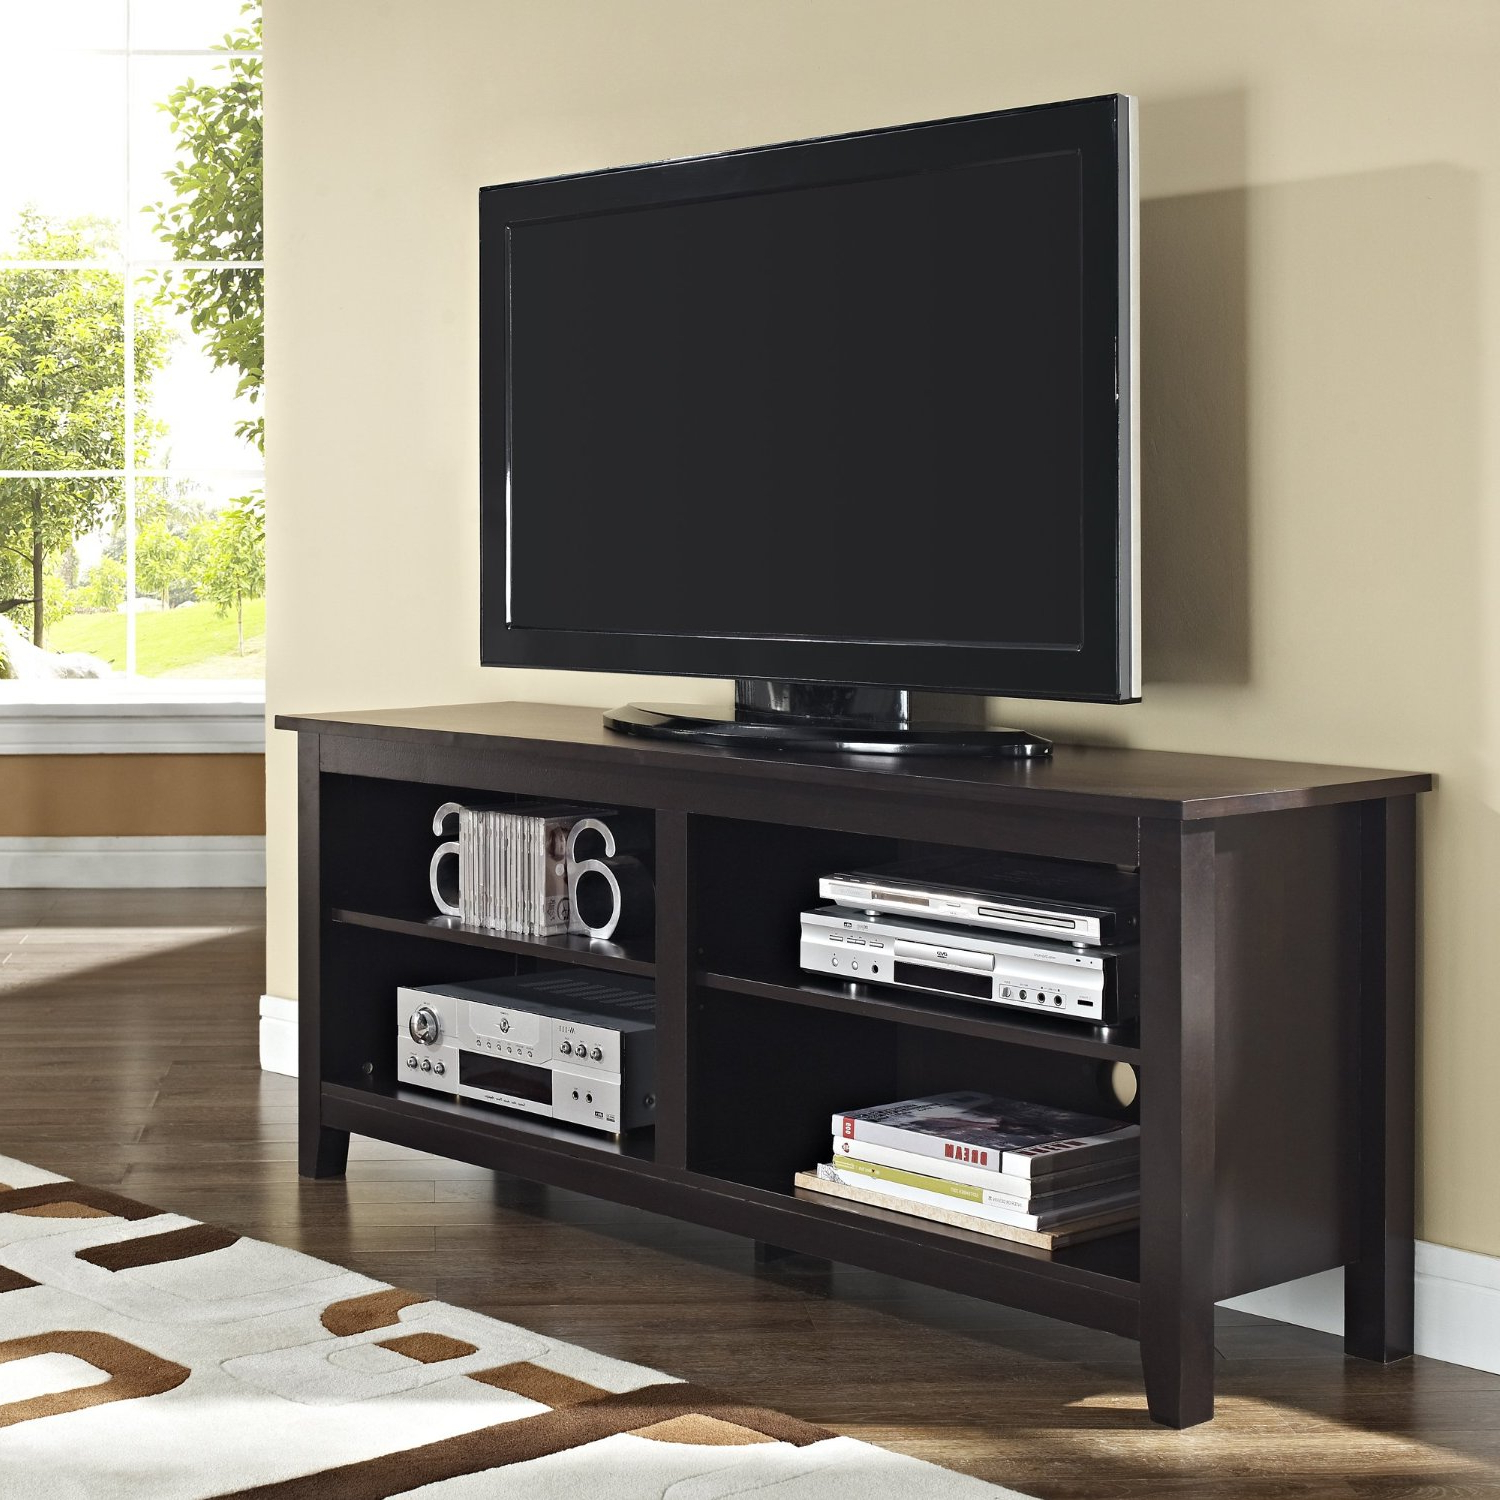 "Expresso Tv Stands Within Popular 58"" Espresso Wood Tv Stand Console – Stands – Furniture (View 9 of 20)"